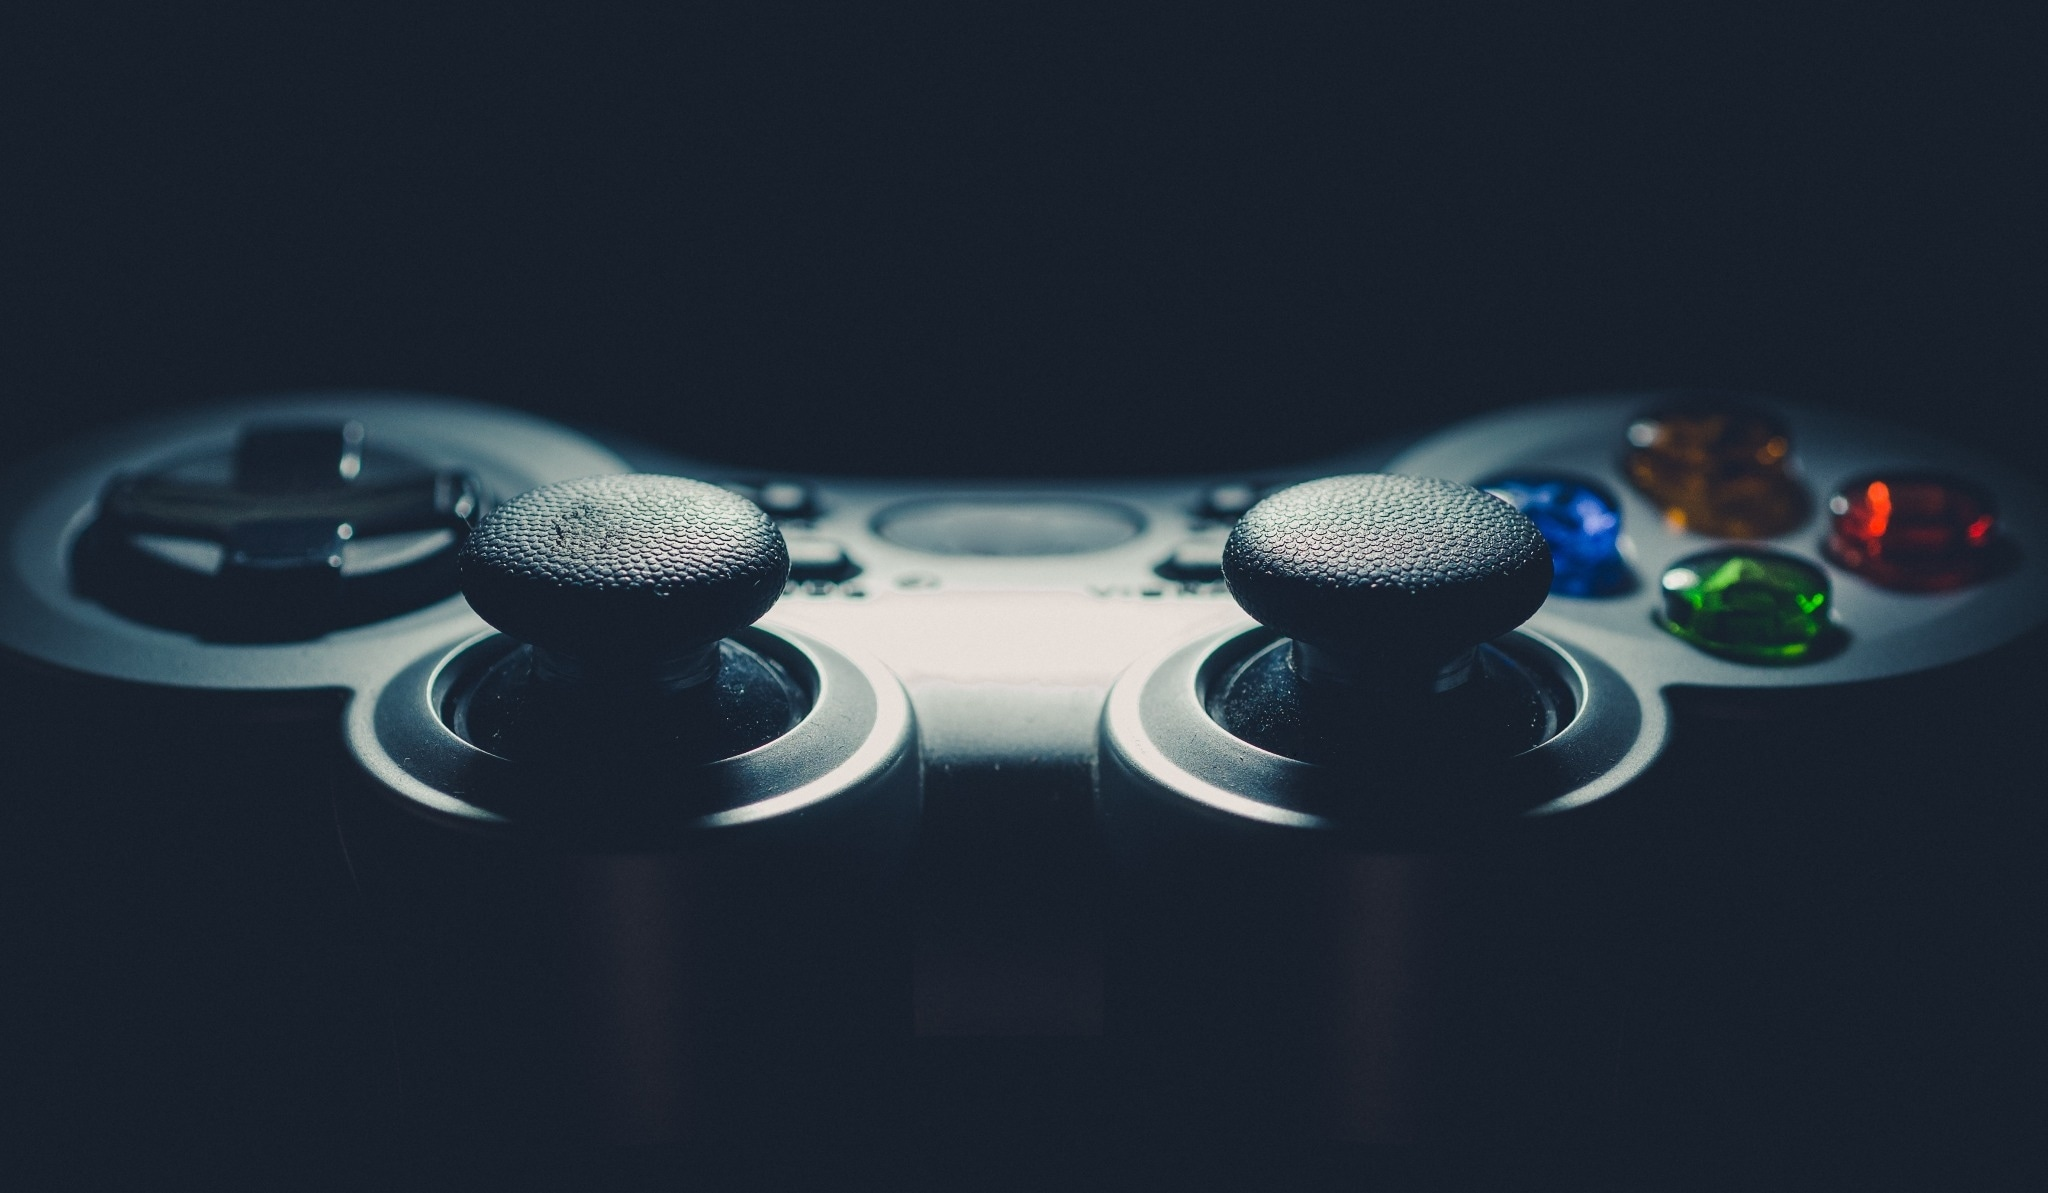 25 Surprising Facts about eSports and the Professional Video Gaming Industry